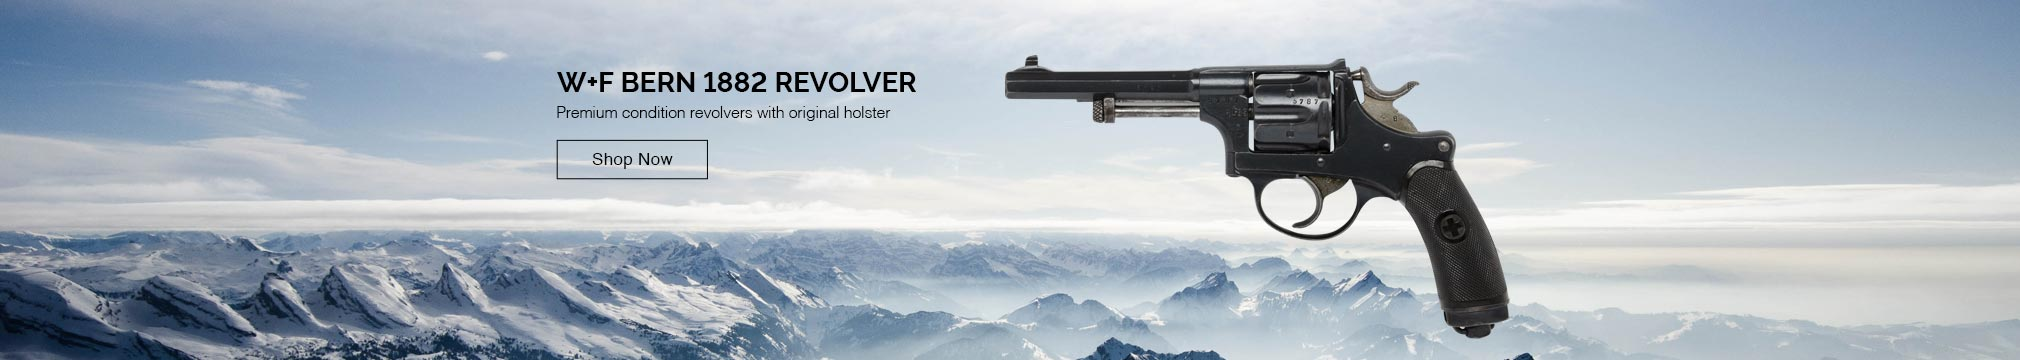 swiss revolvers back in stock